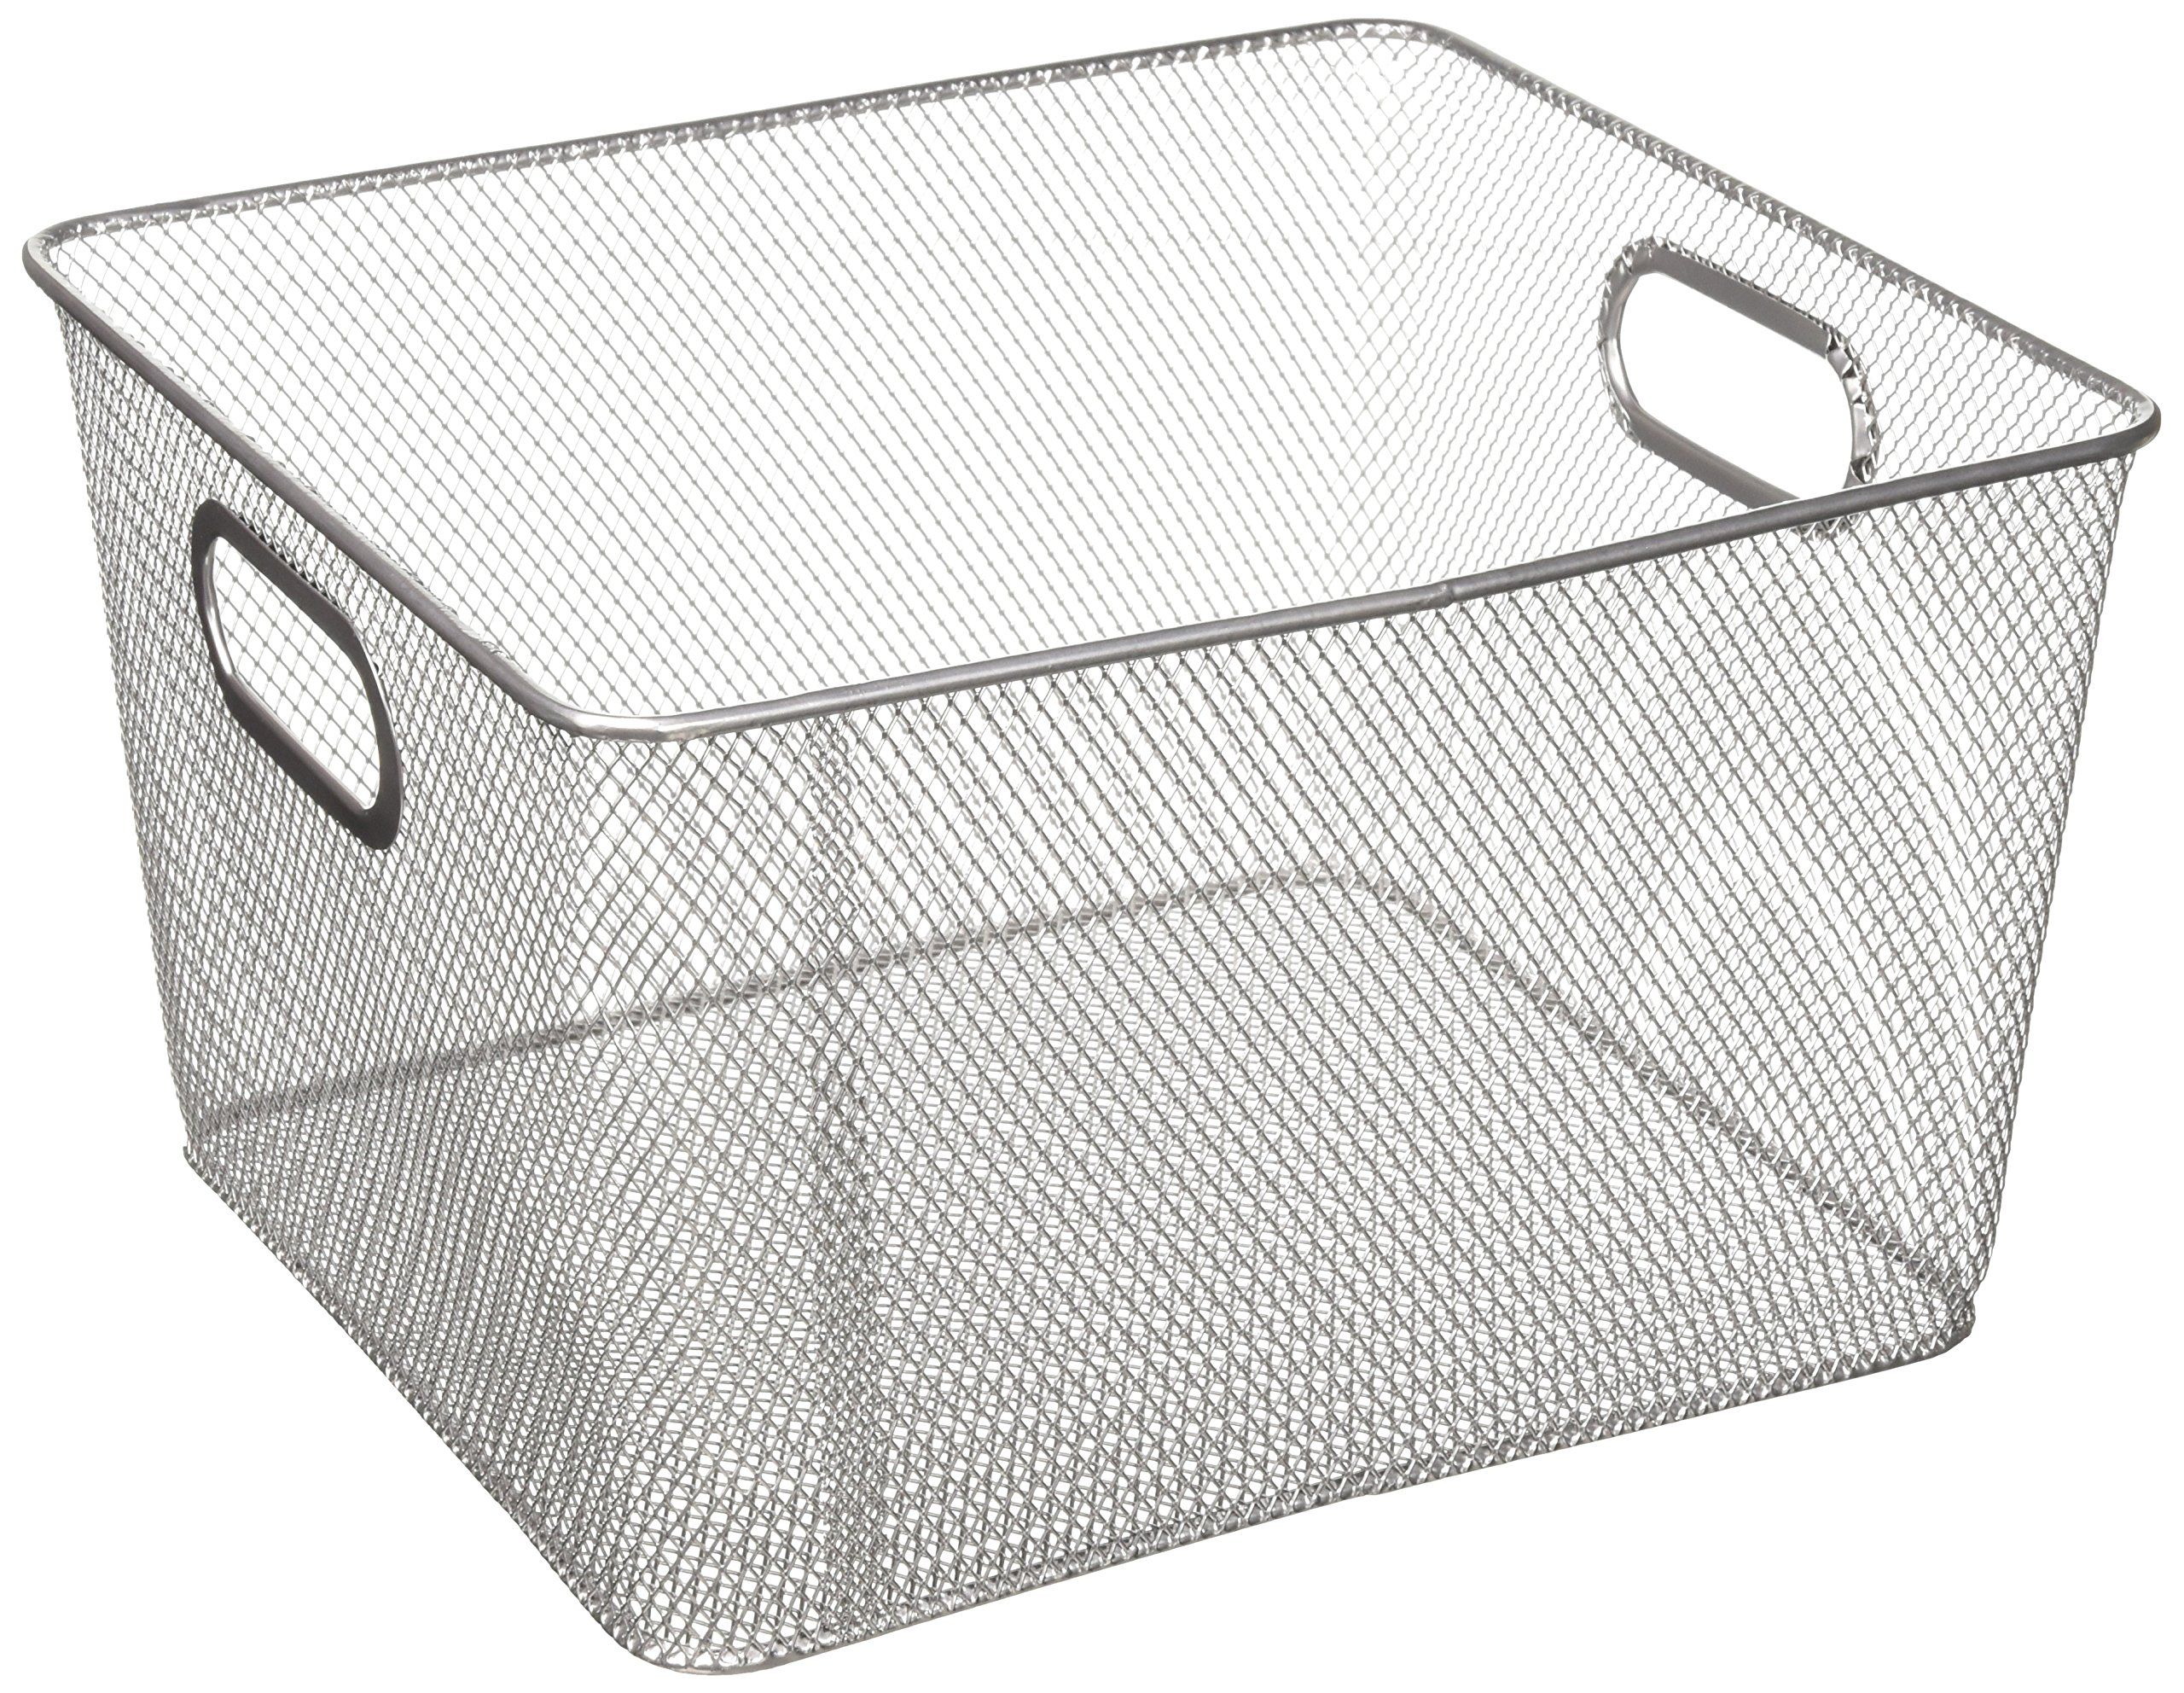 Pantry Storage Bins: Amazon.com